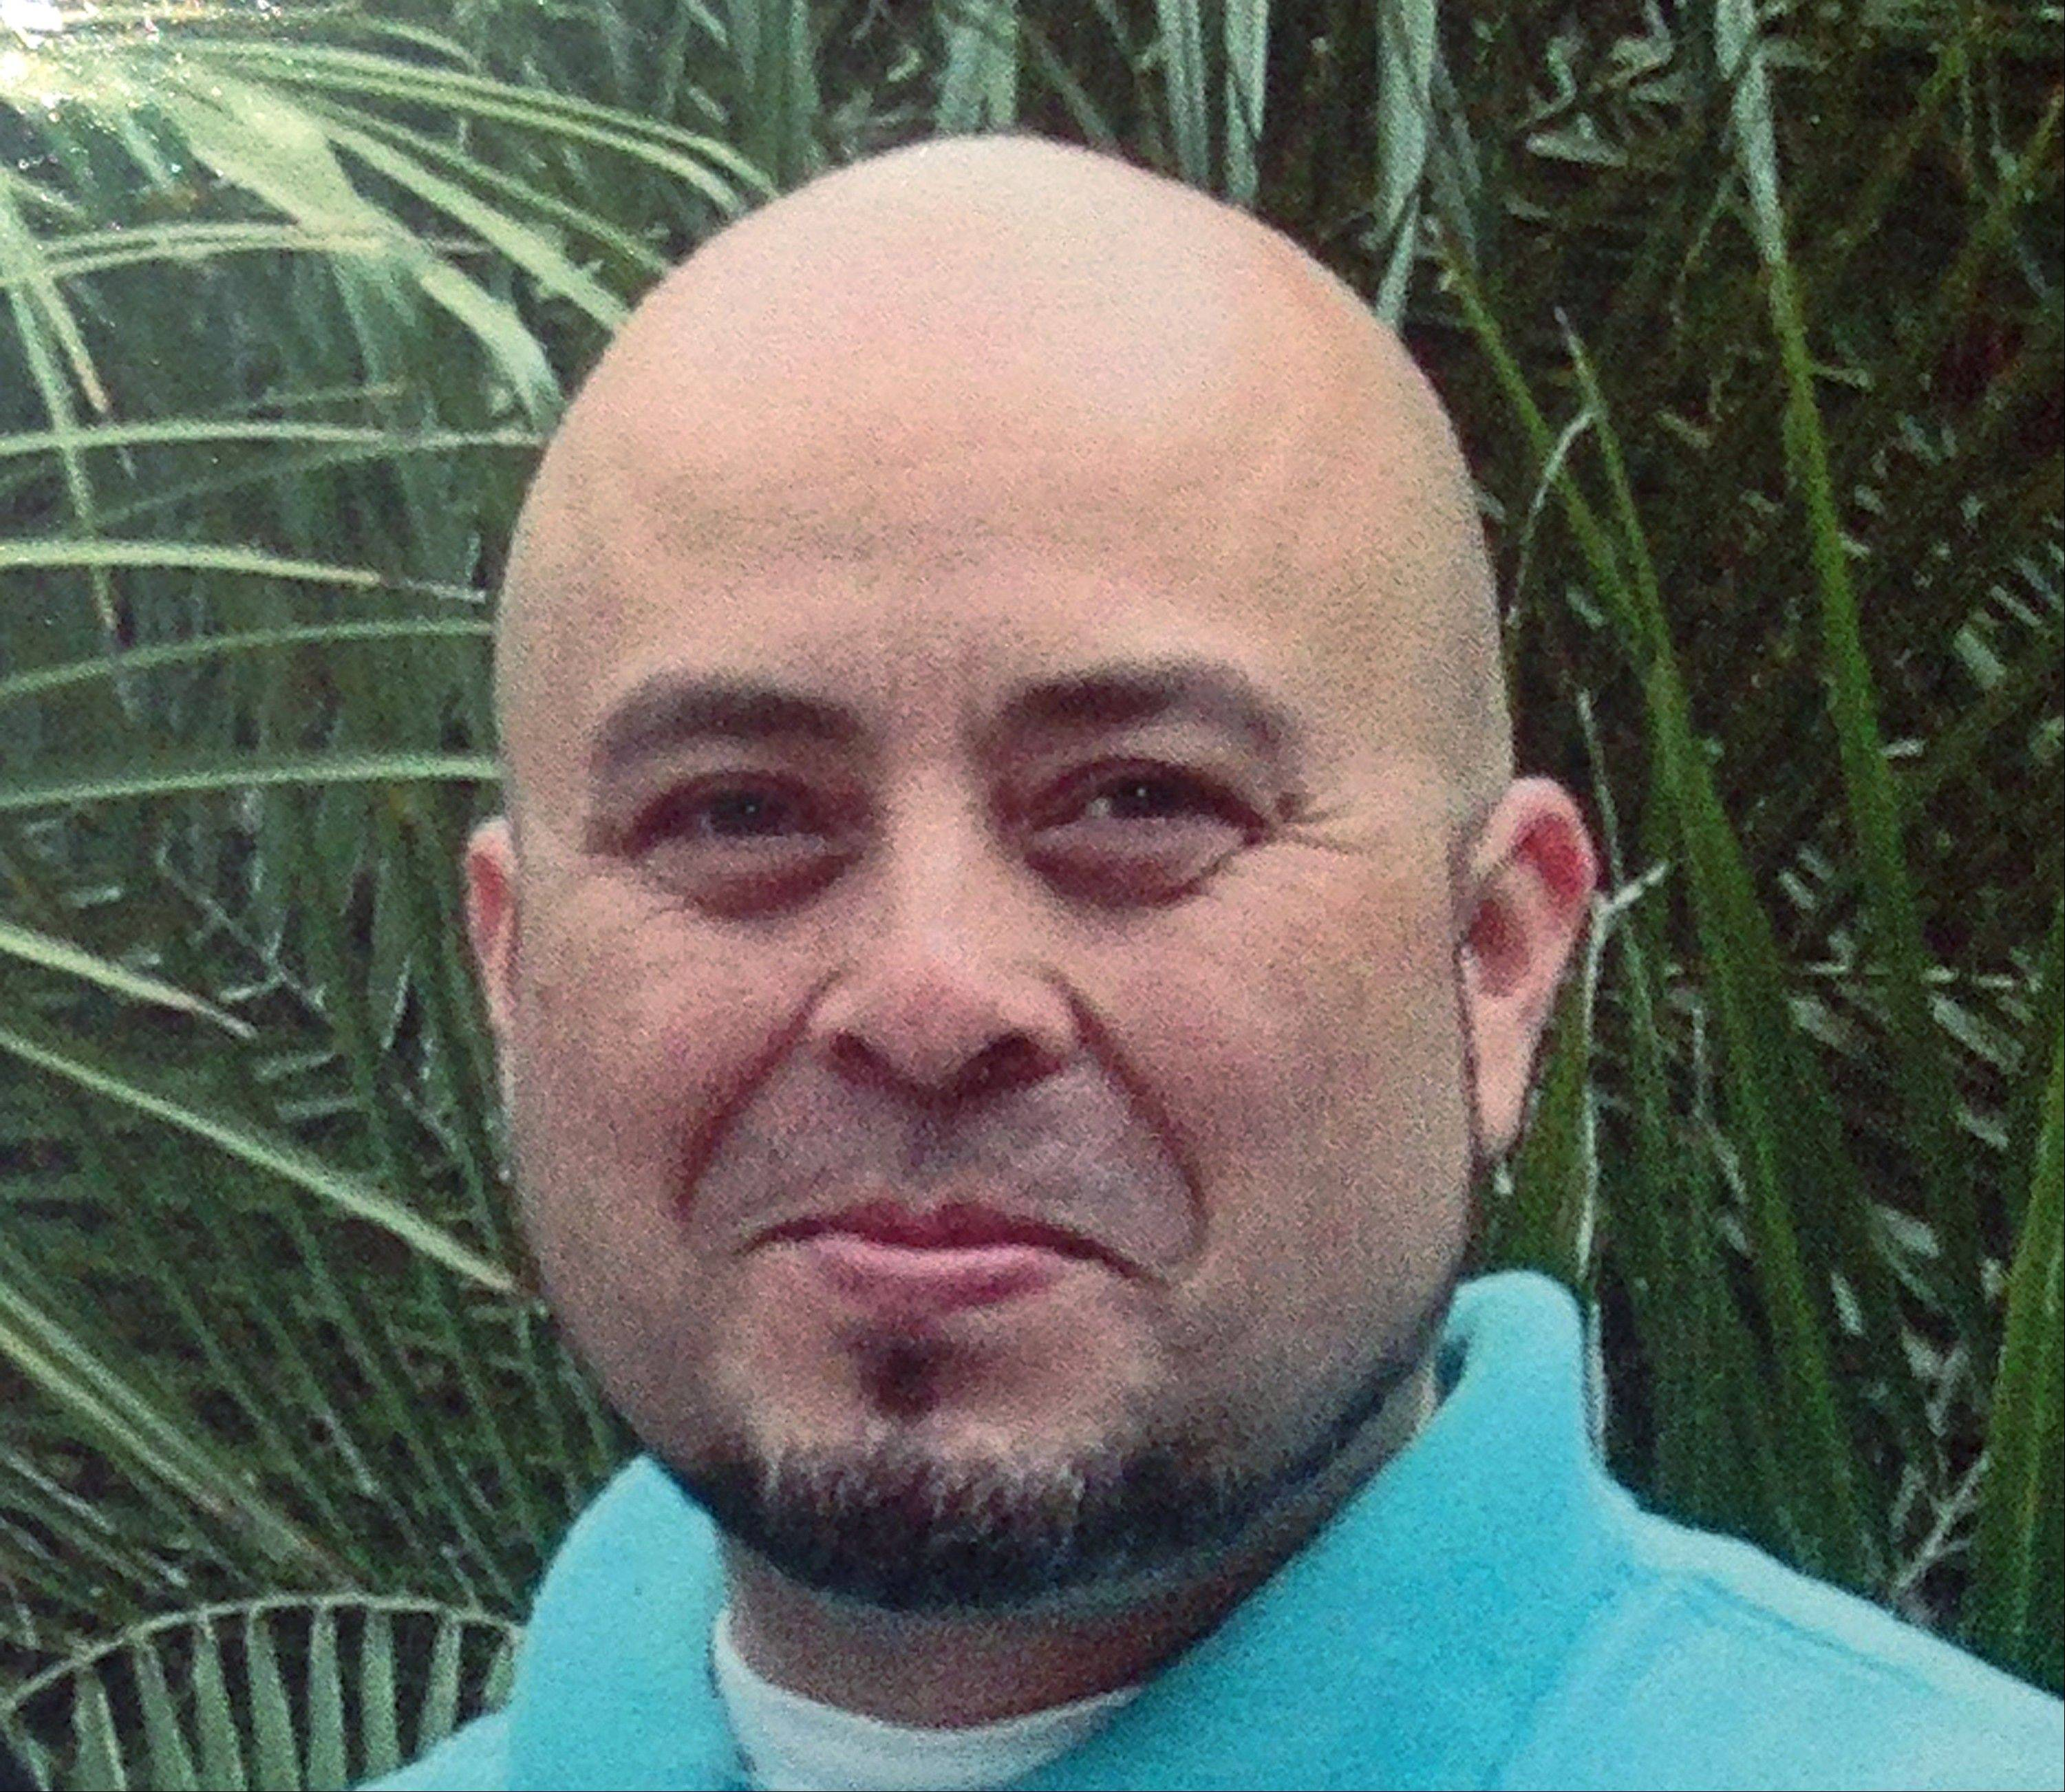 Transportation Security Administration officer Gerardo Hernandez, 39, was shot to death and several others wounded by a gunman who went on a shooting rampage in Terminal 3 at Los Angeles International Airport Friday.